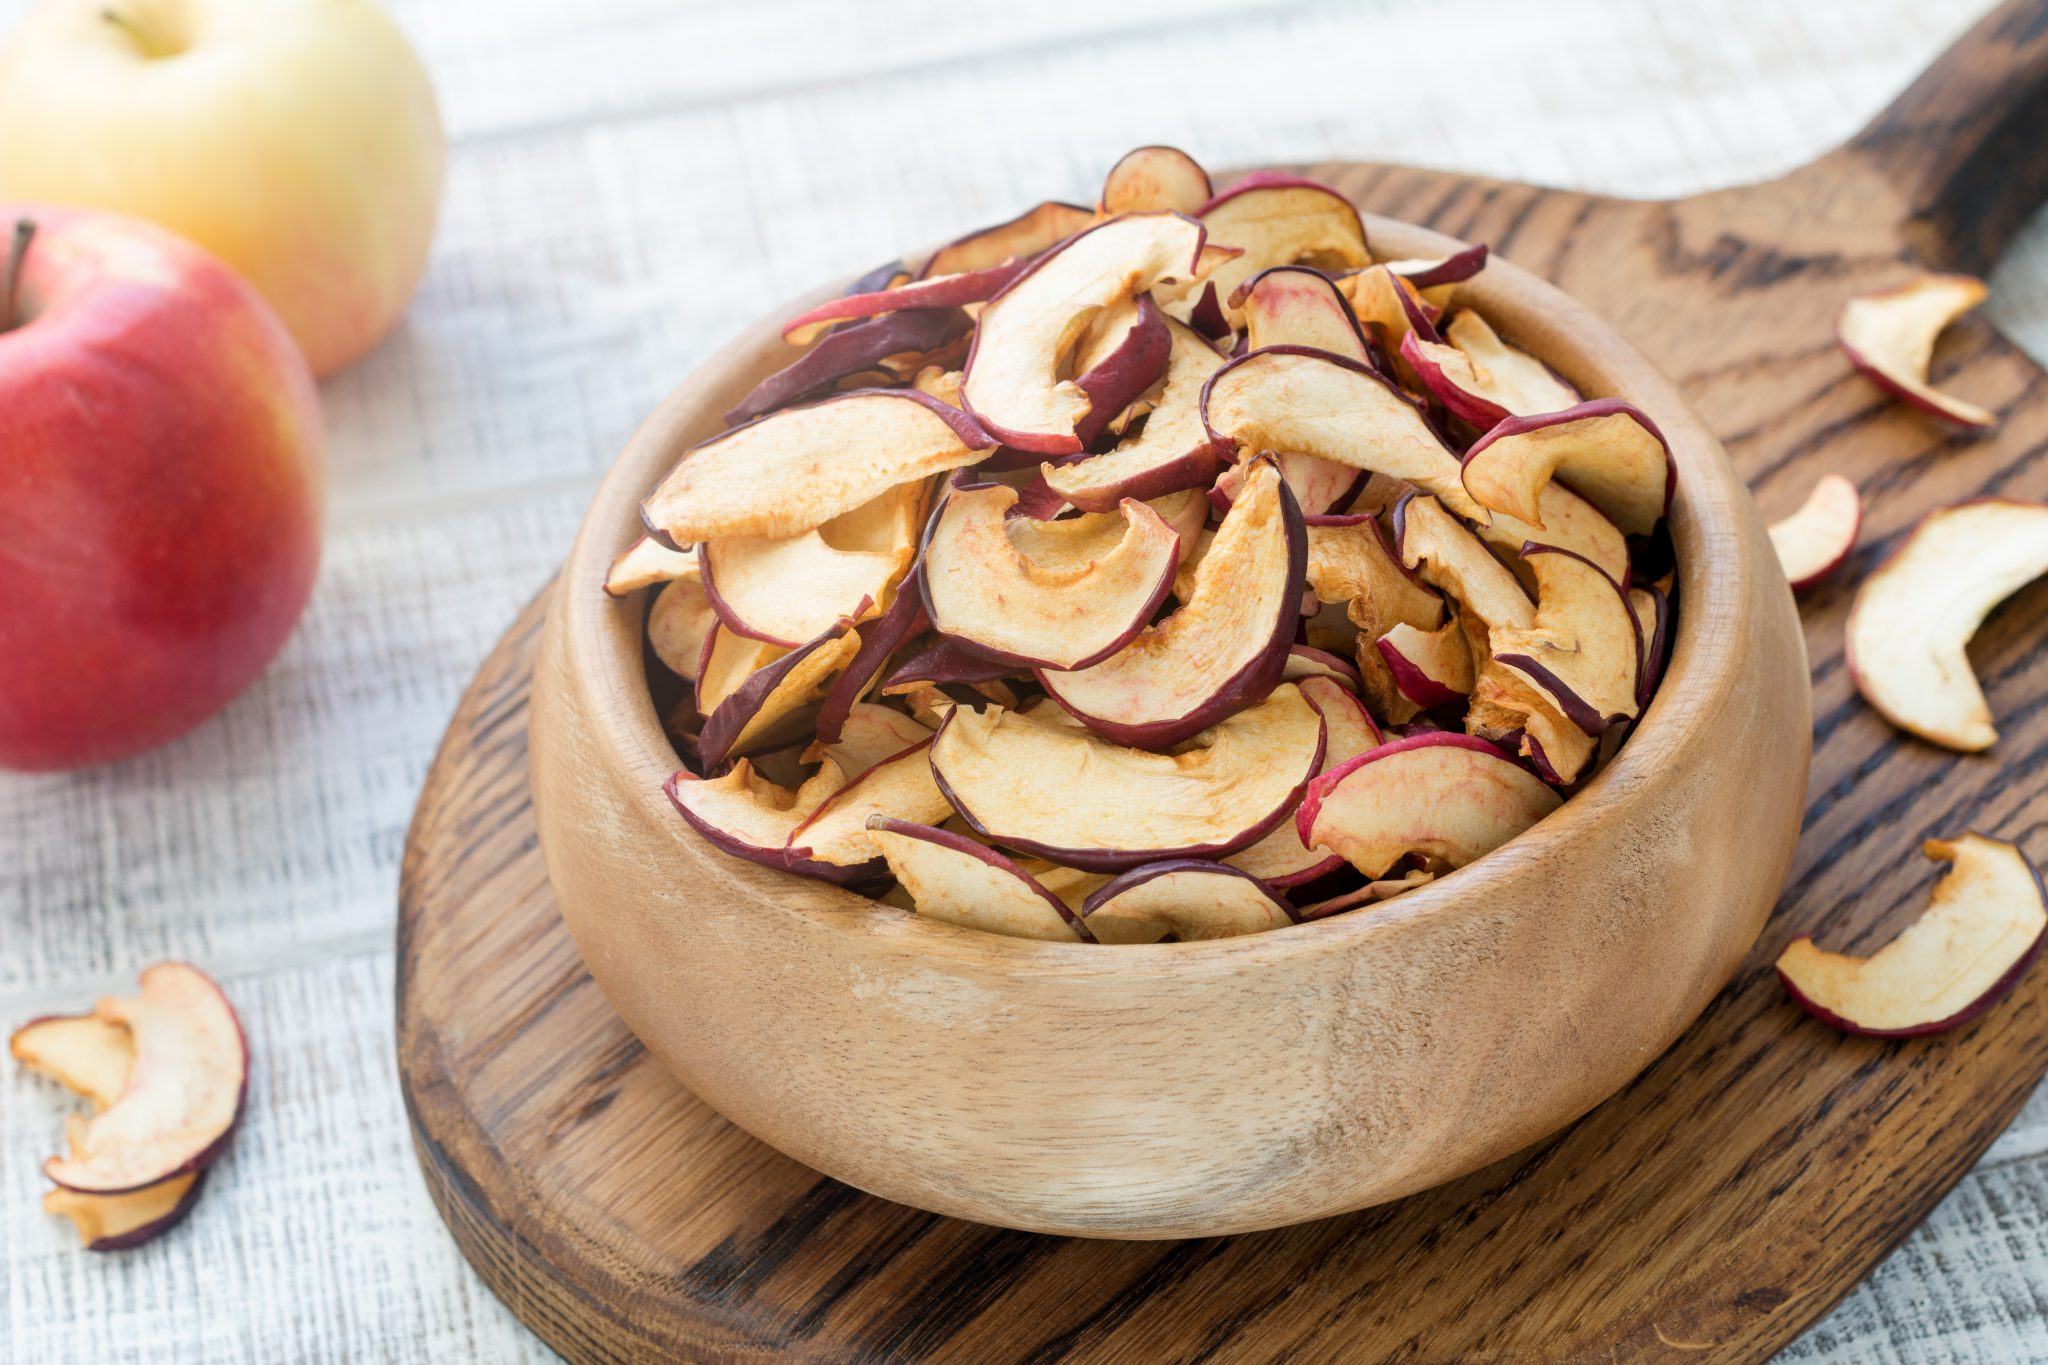 Homemade dried apples or apple chips in a wooden bowl, closeup view